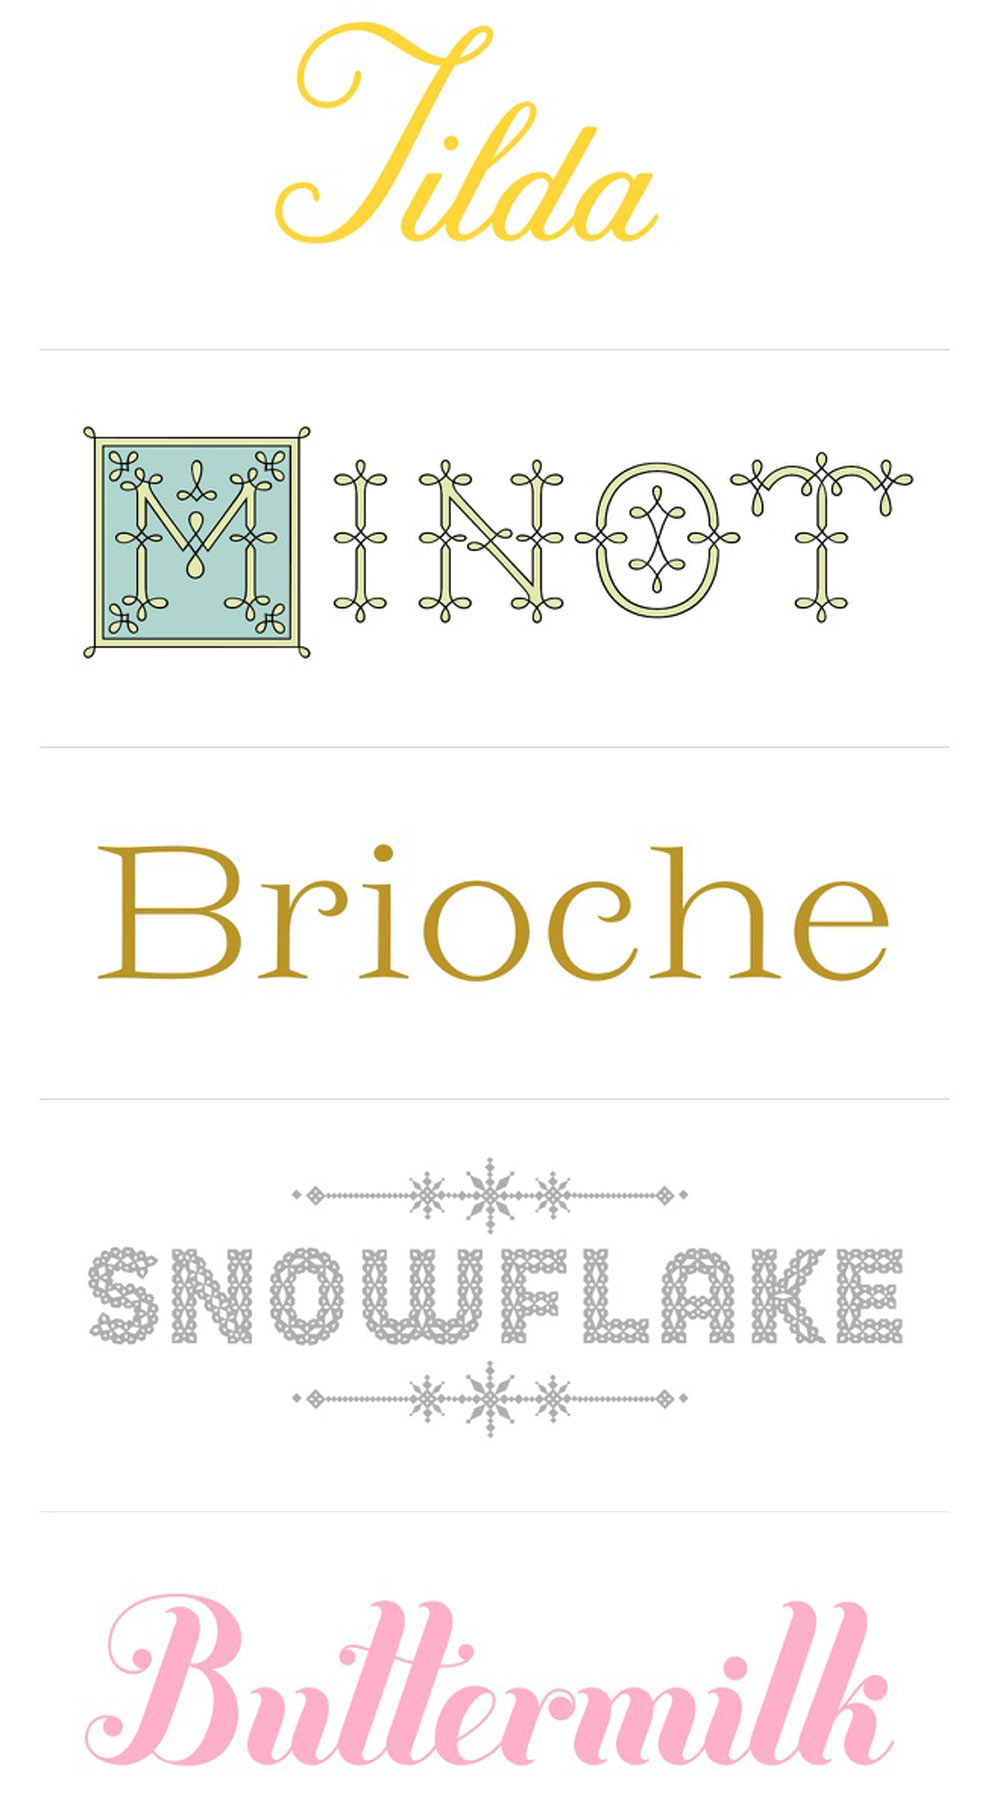 Fonts by Jessica Hische